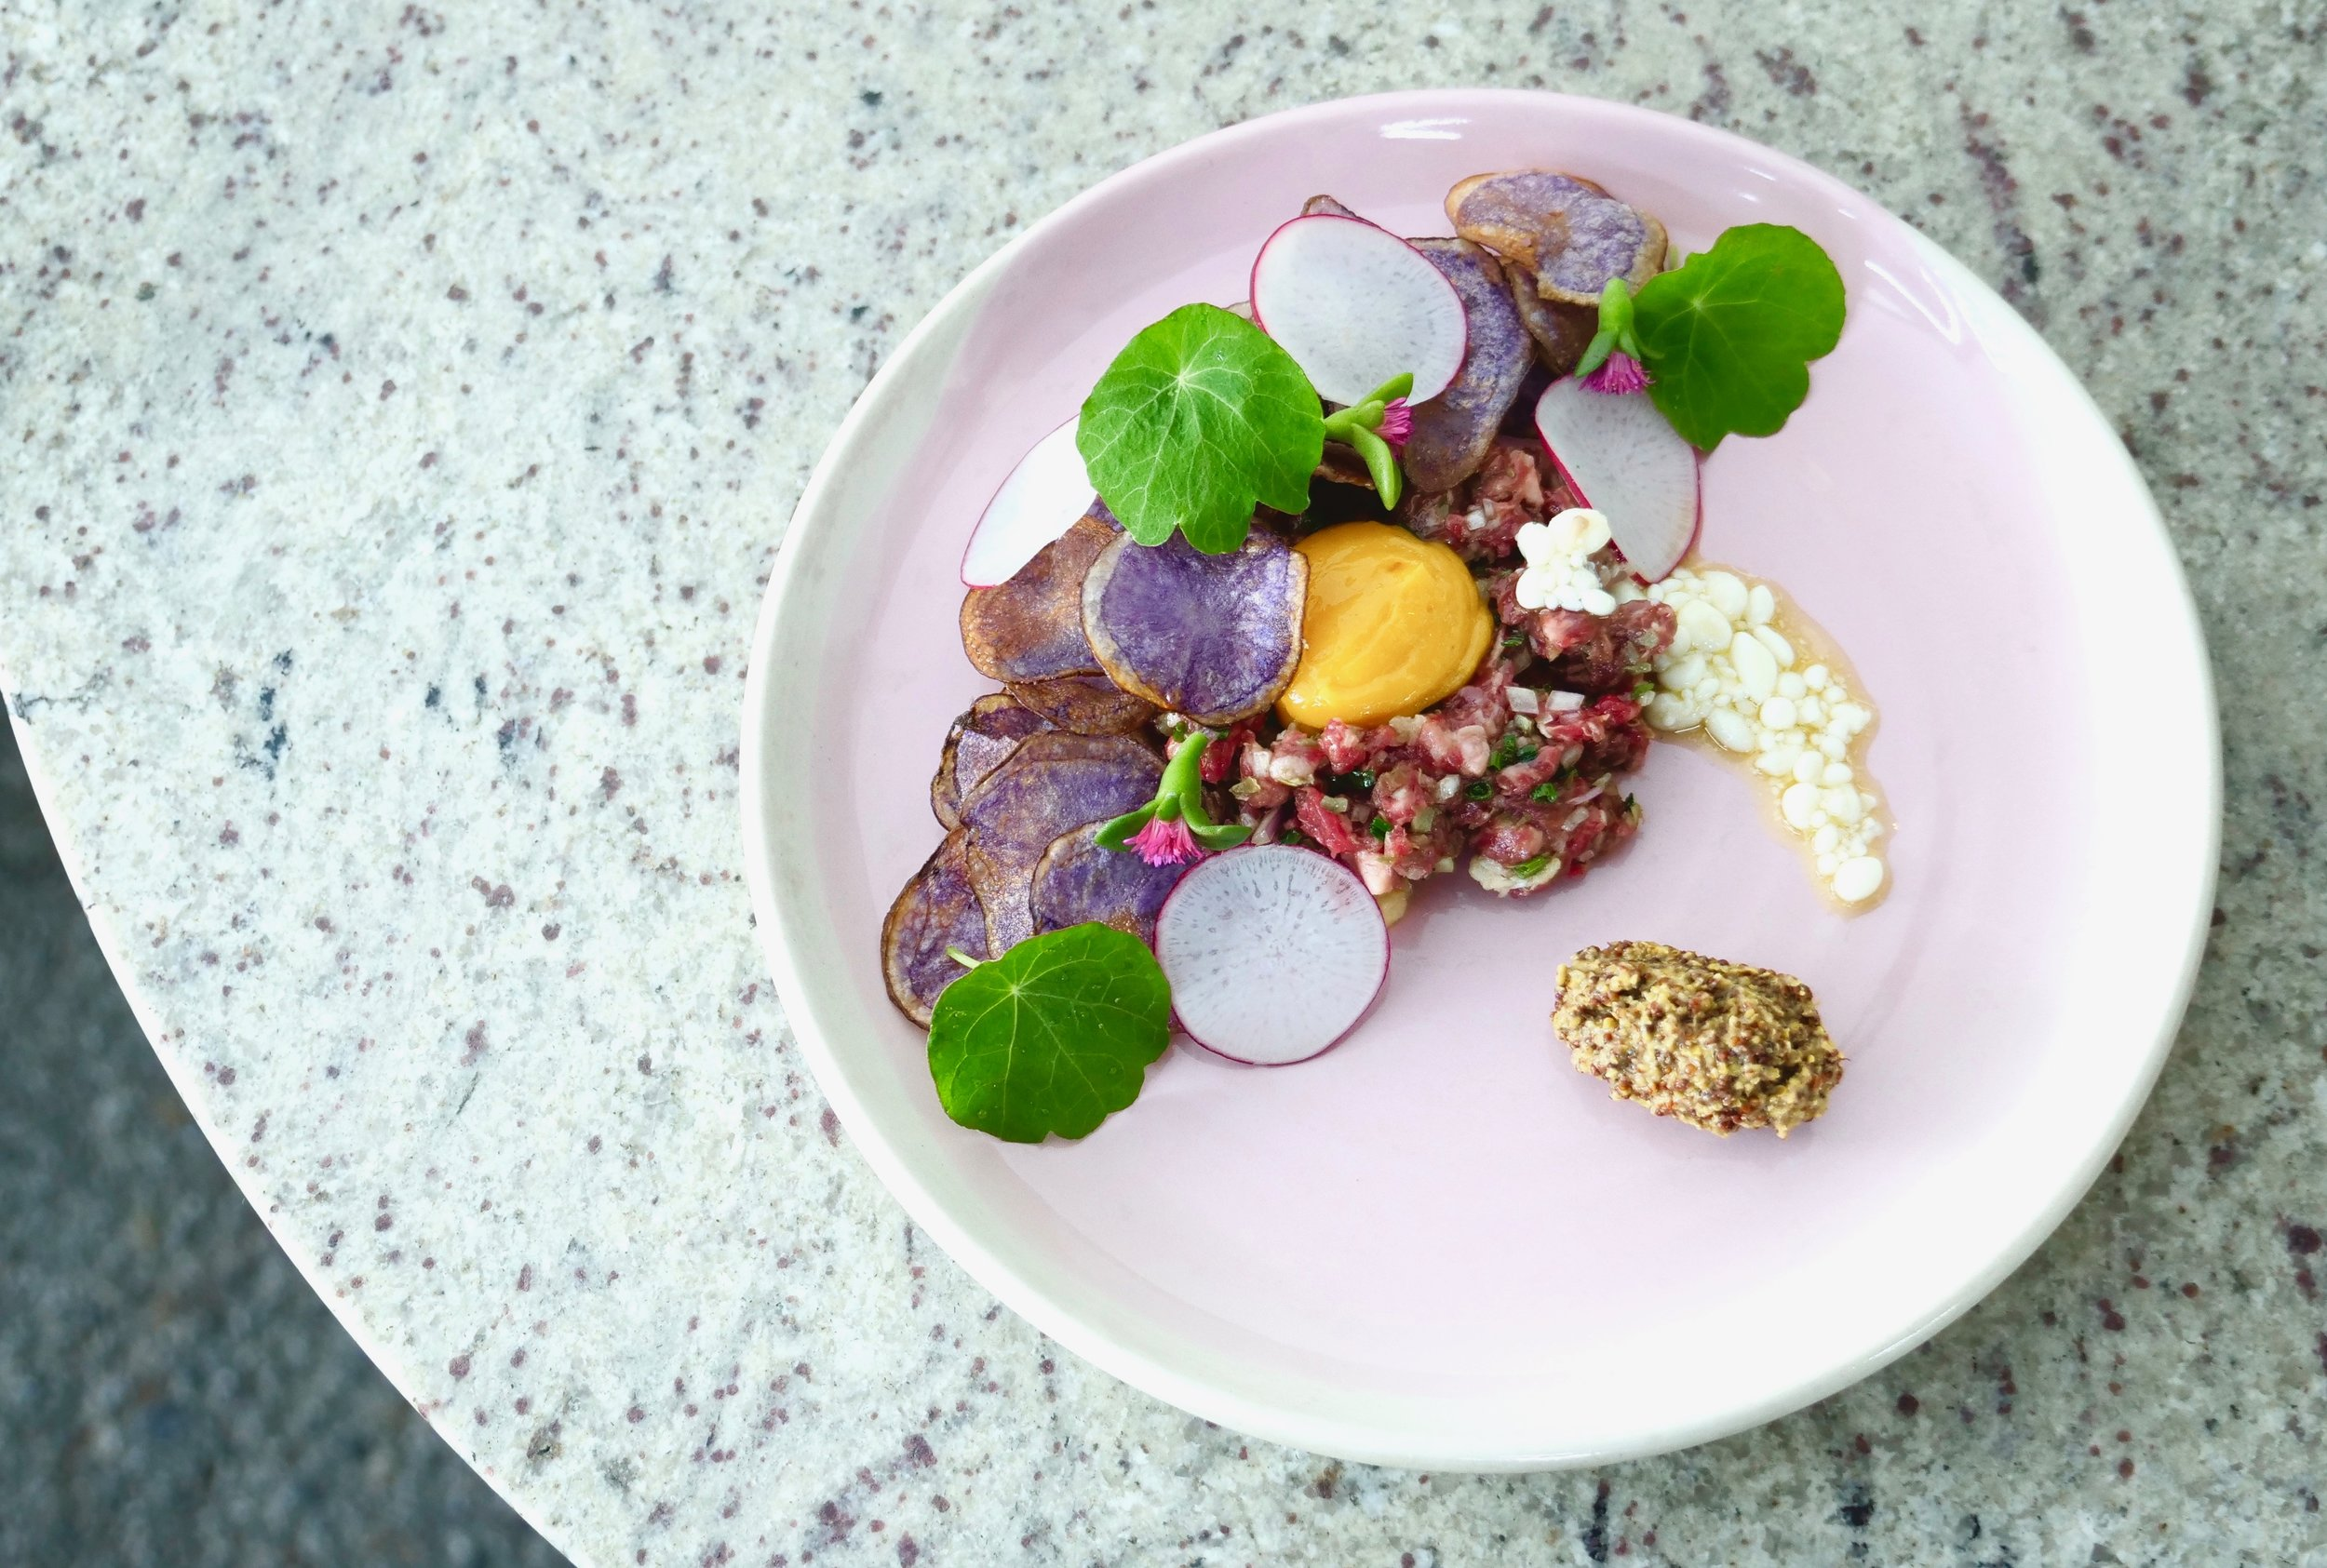 BEEF TARTARE, RED RADISH, SEEDED MUSTARD, NASTURTIUM, ICE PLANT FLOWER.